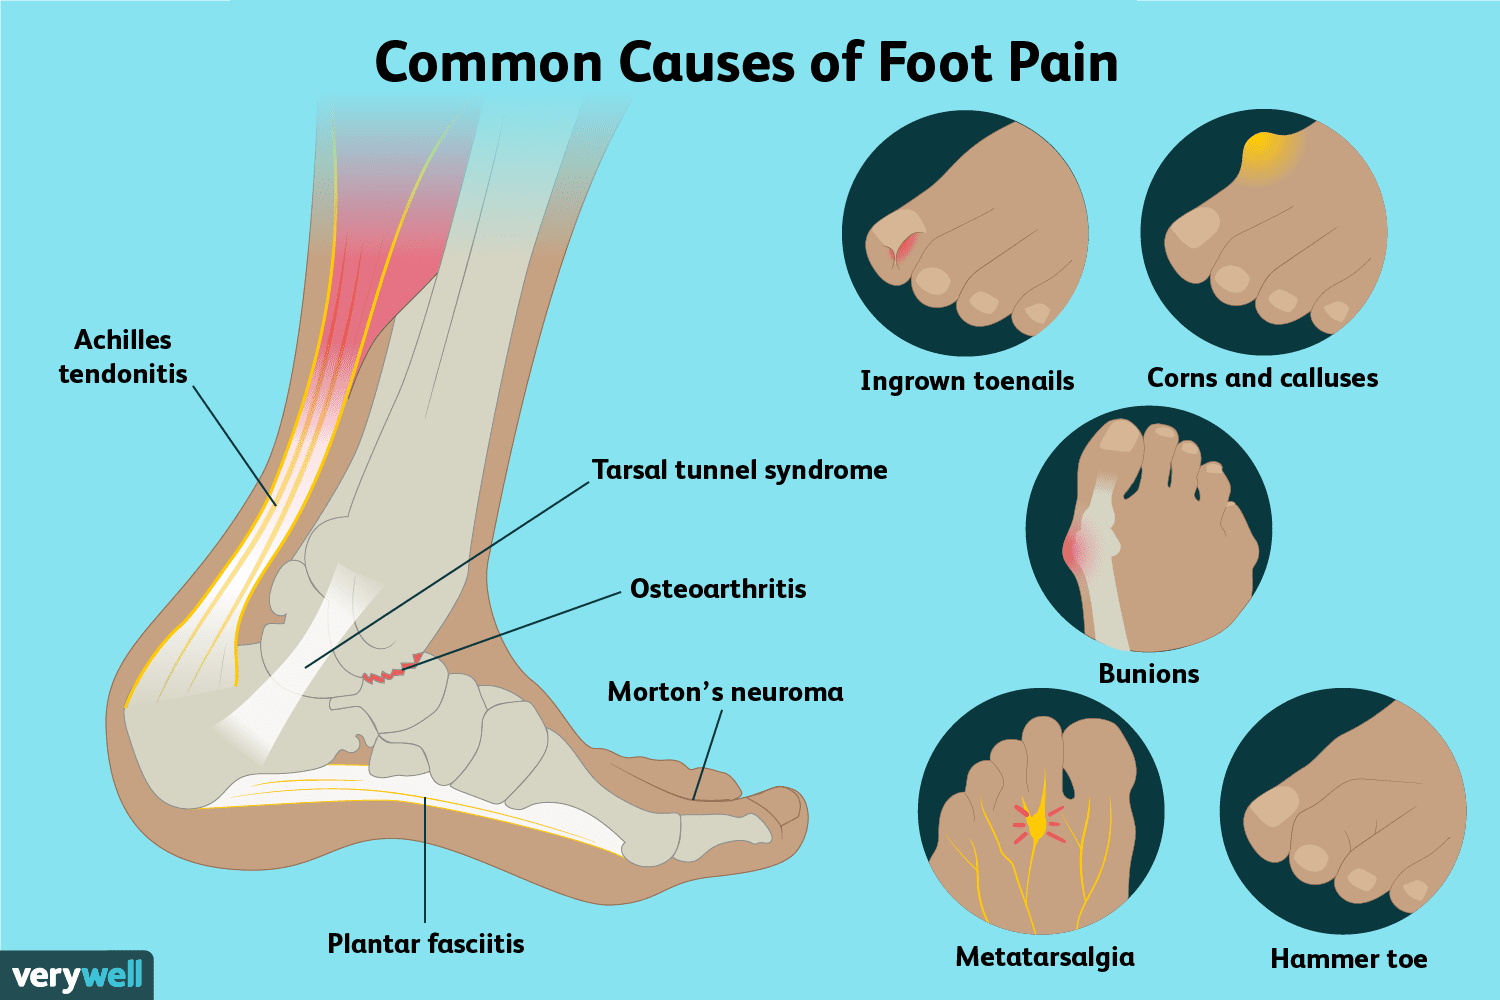 hight resolution of causes of foot pain and treatment options